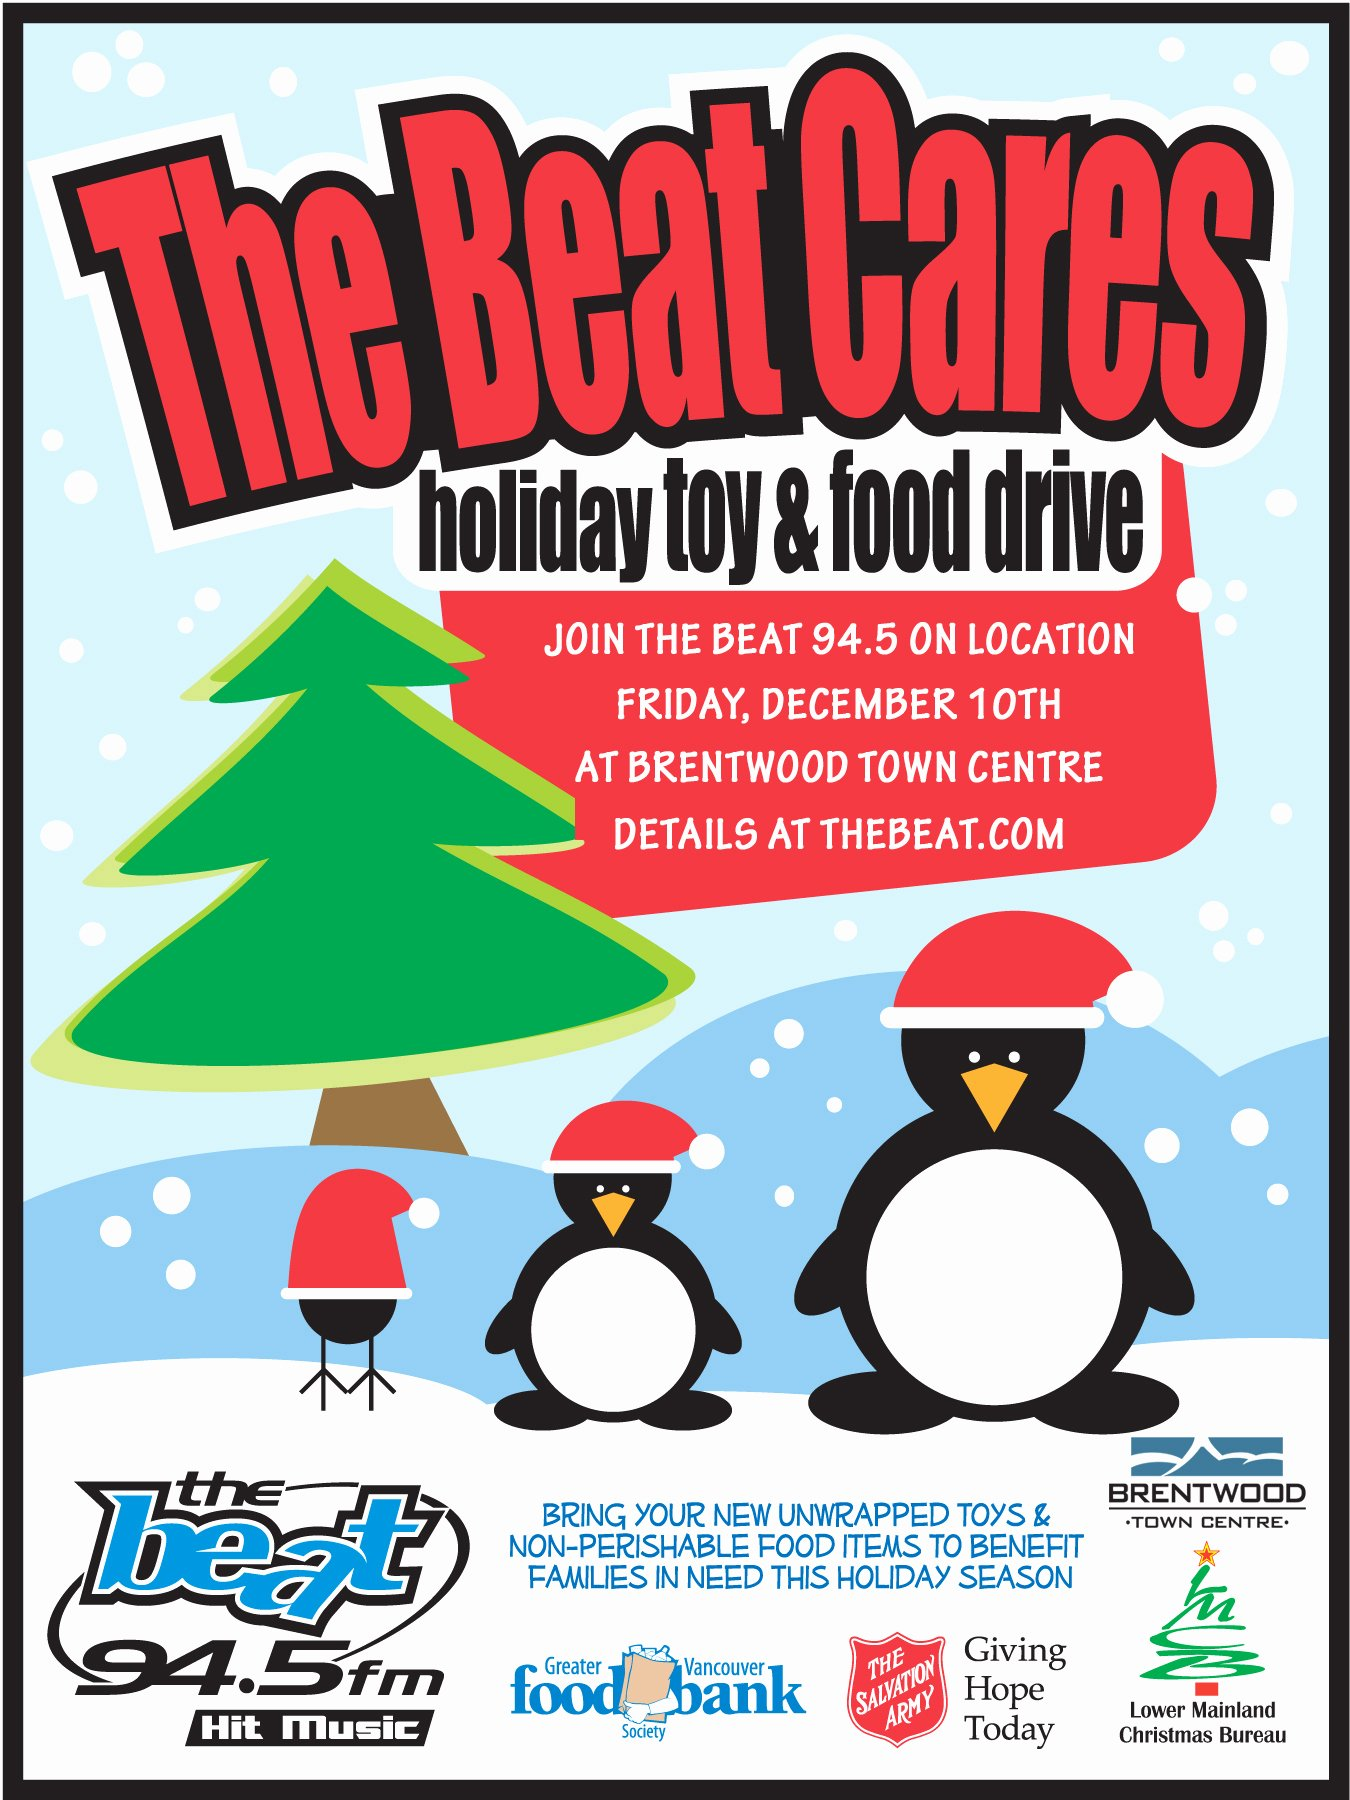 Canned Food Drive Flyer Best Of the Beat Cares Holiday toy and Food Drive British